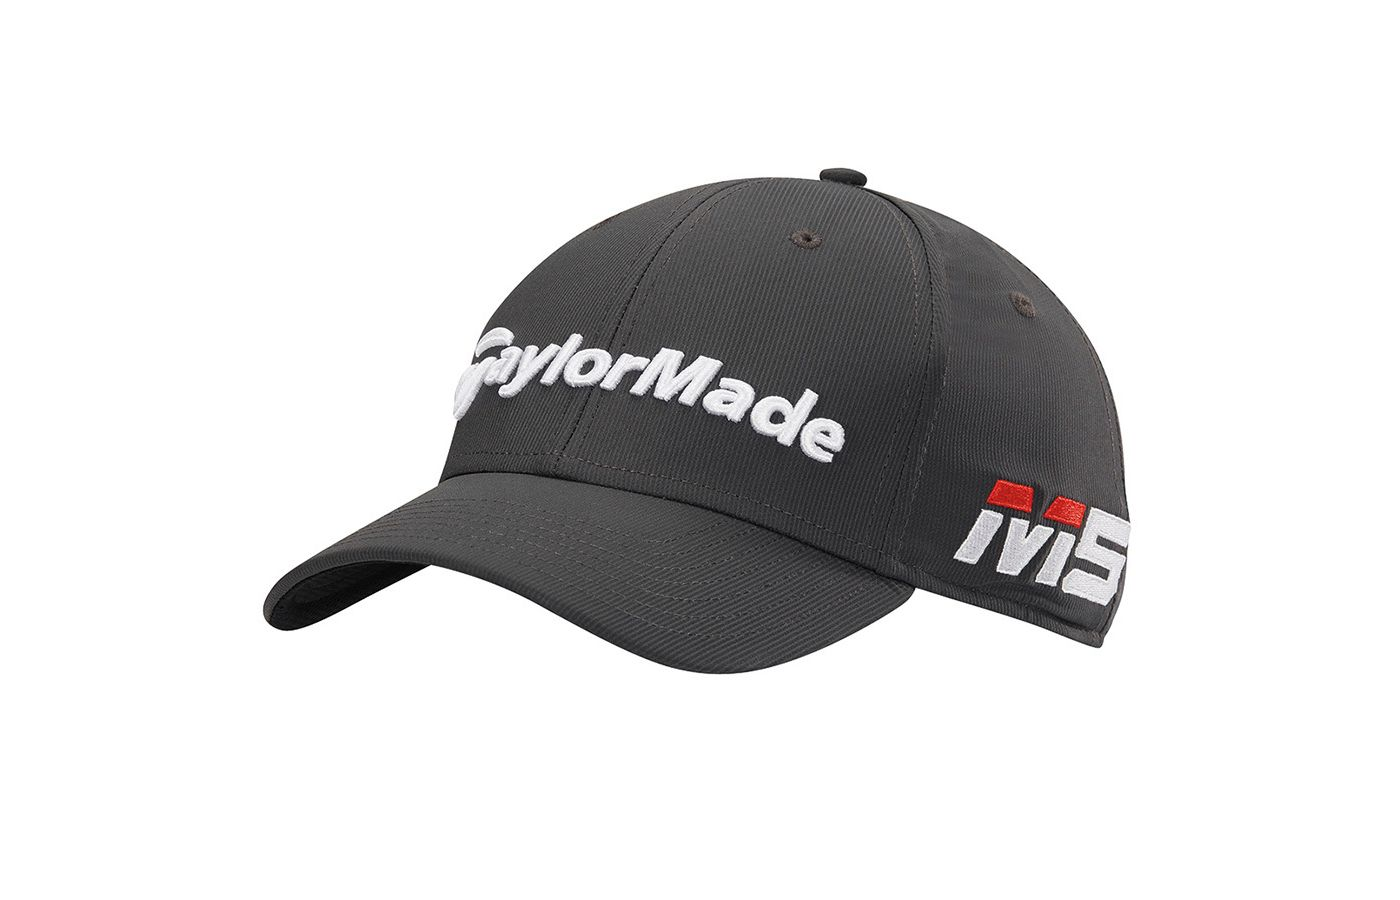 TaylorMade Men's Tour Radar Golf Hat